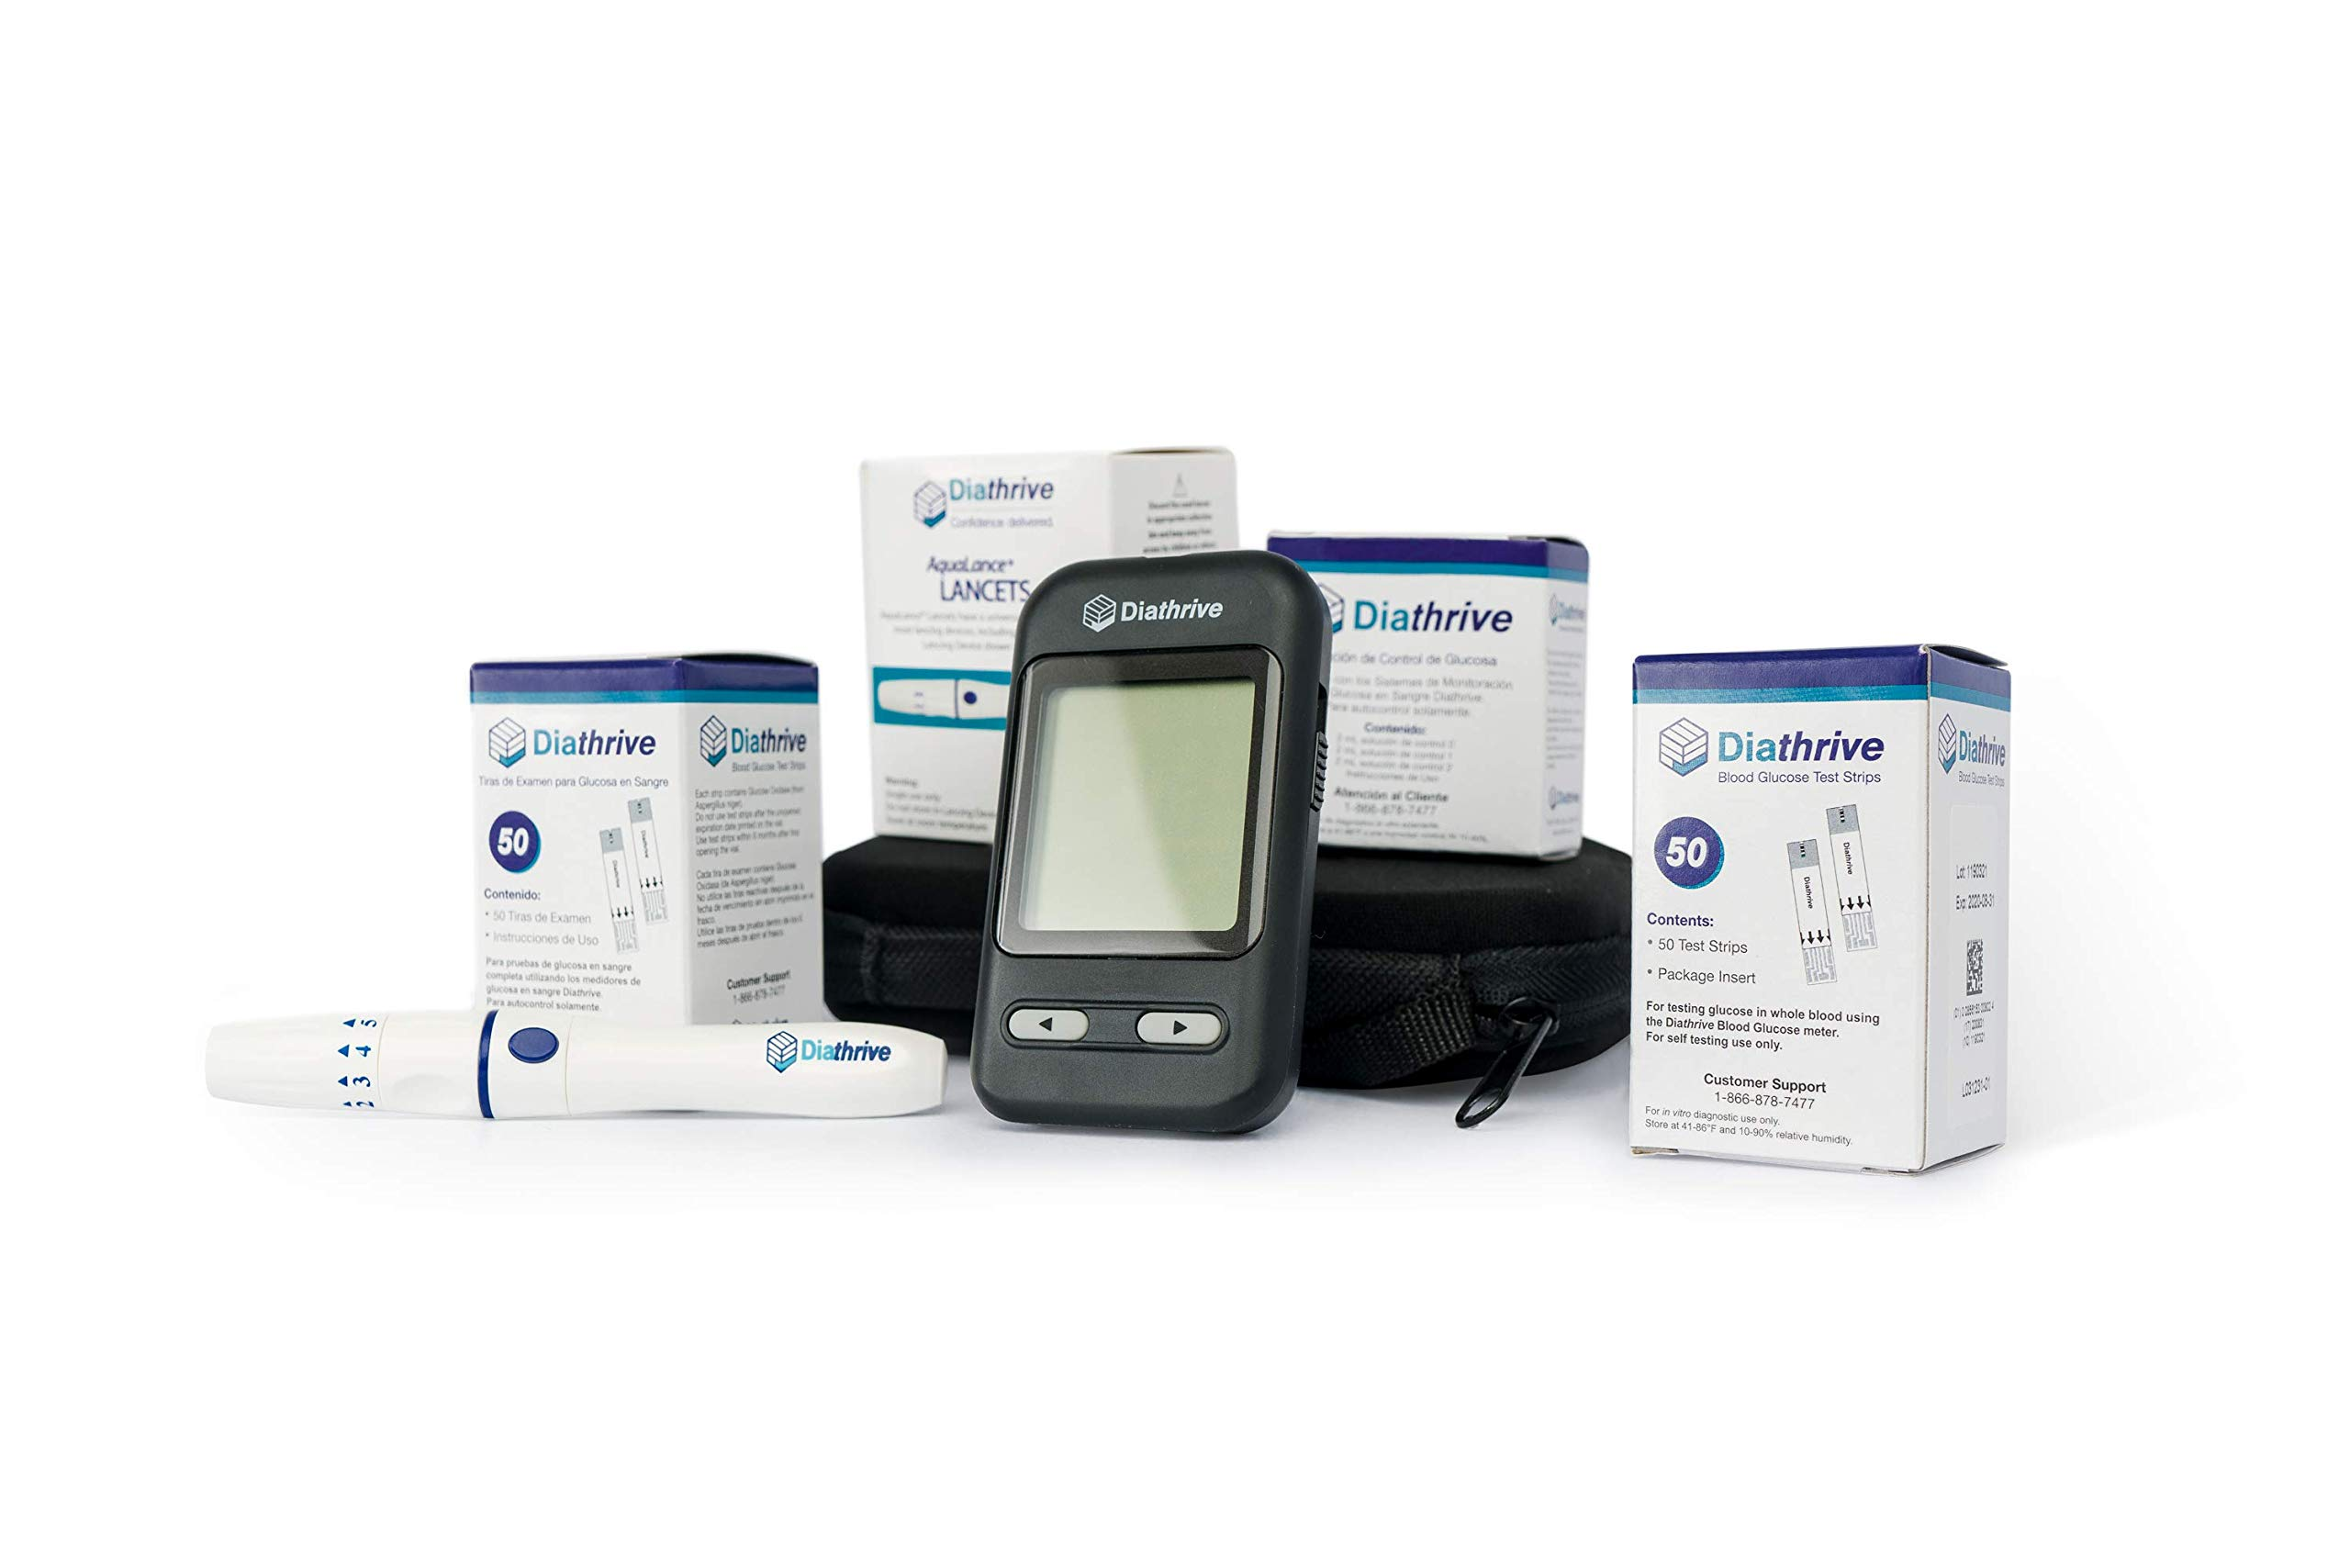 Diathrive Blood Glucose Meter Starter Kit | Includes: 100 Test Strips, 100 Lancets, Lancing Device, Control Solution, Meter, Manuals, Logbook, Carrying Case by Diathrive (Image #2)